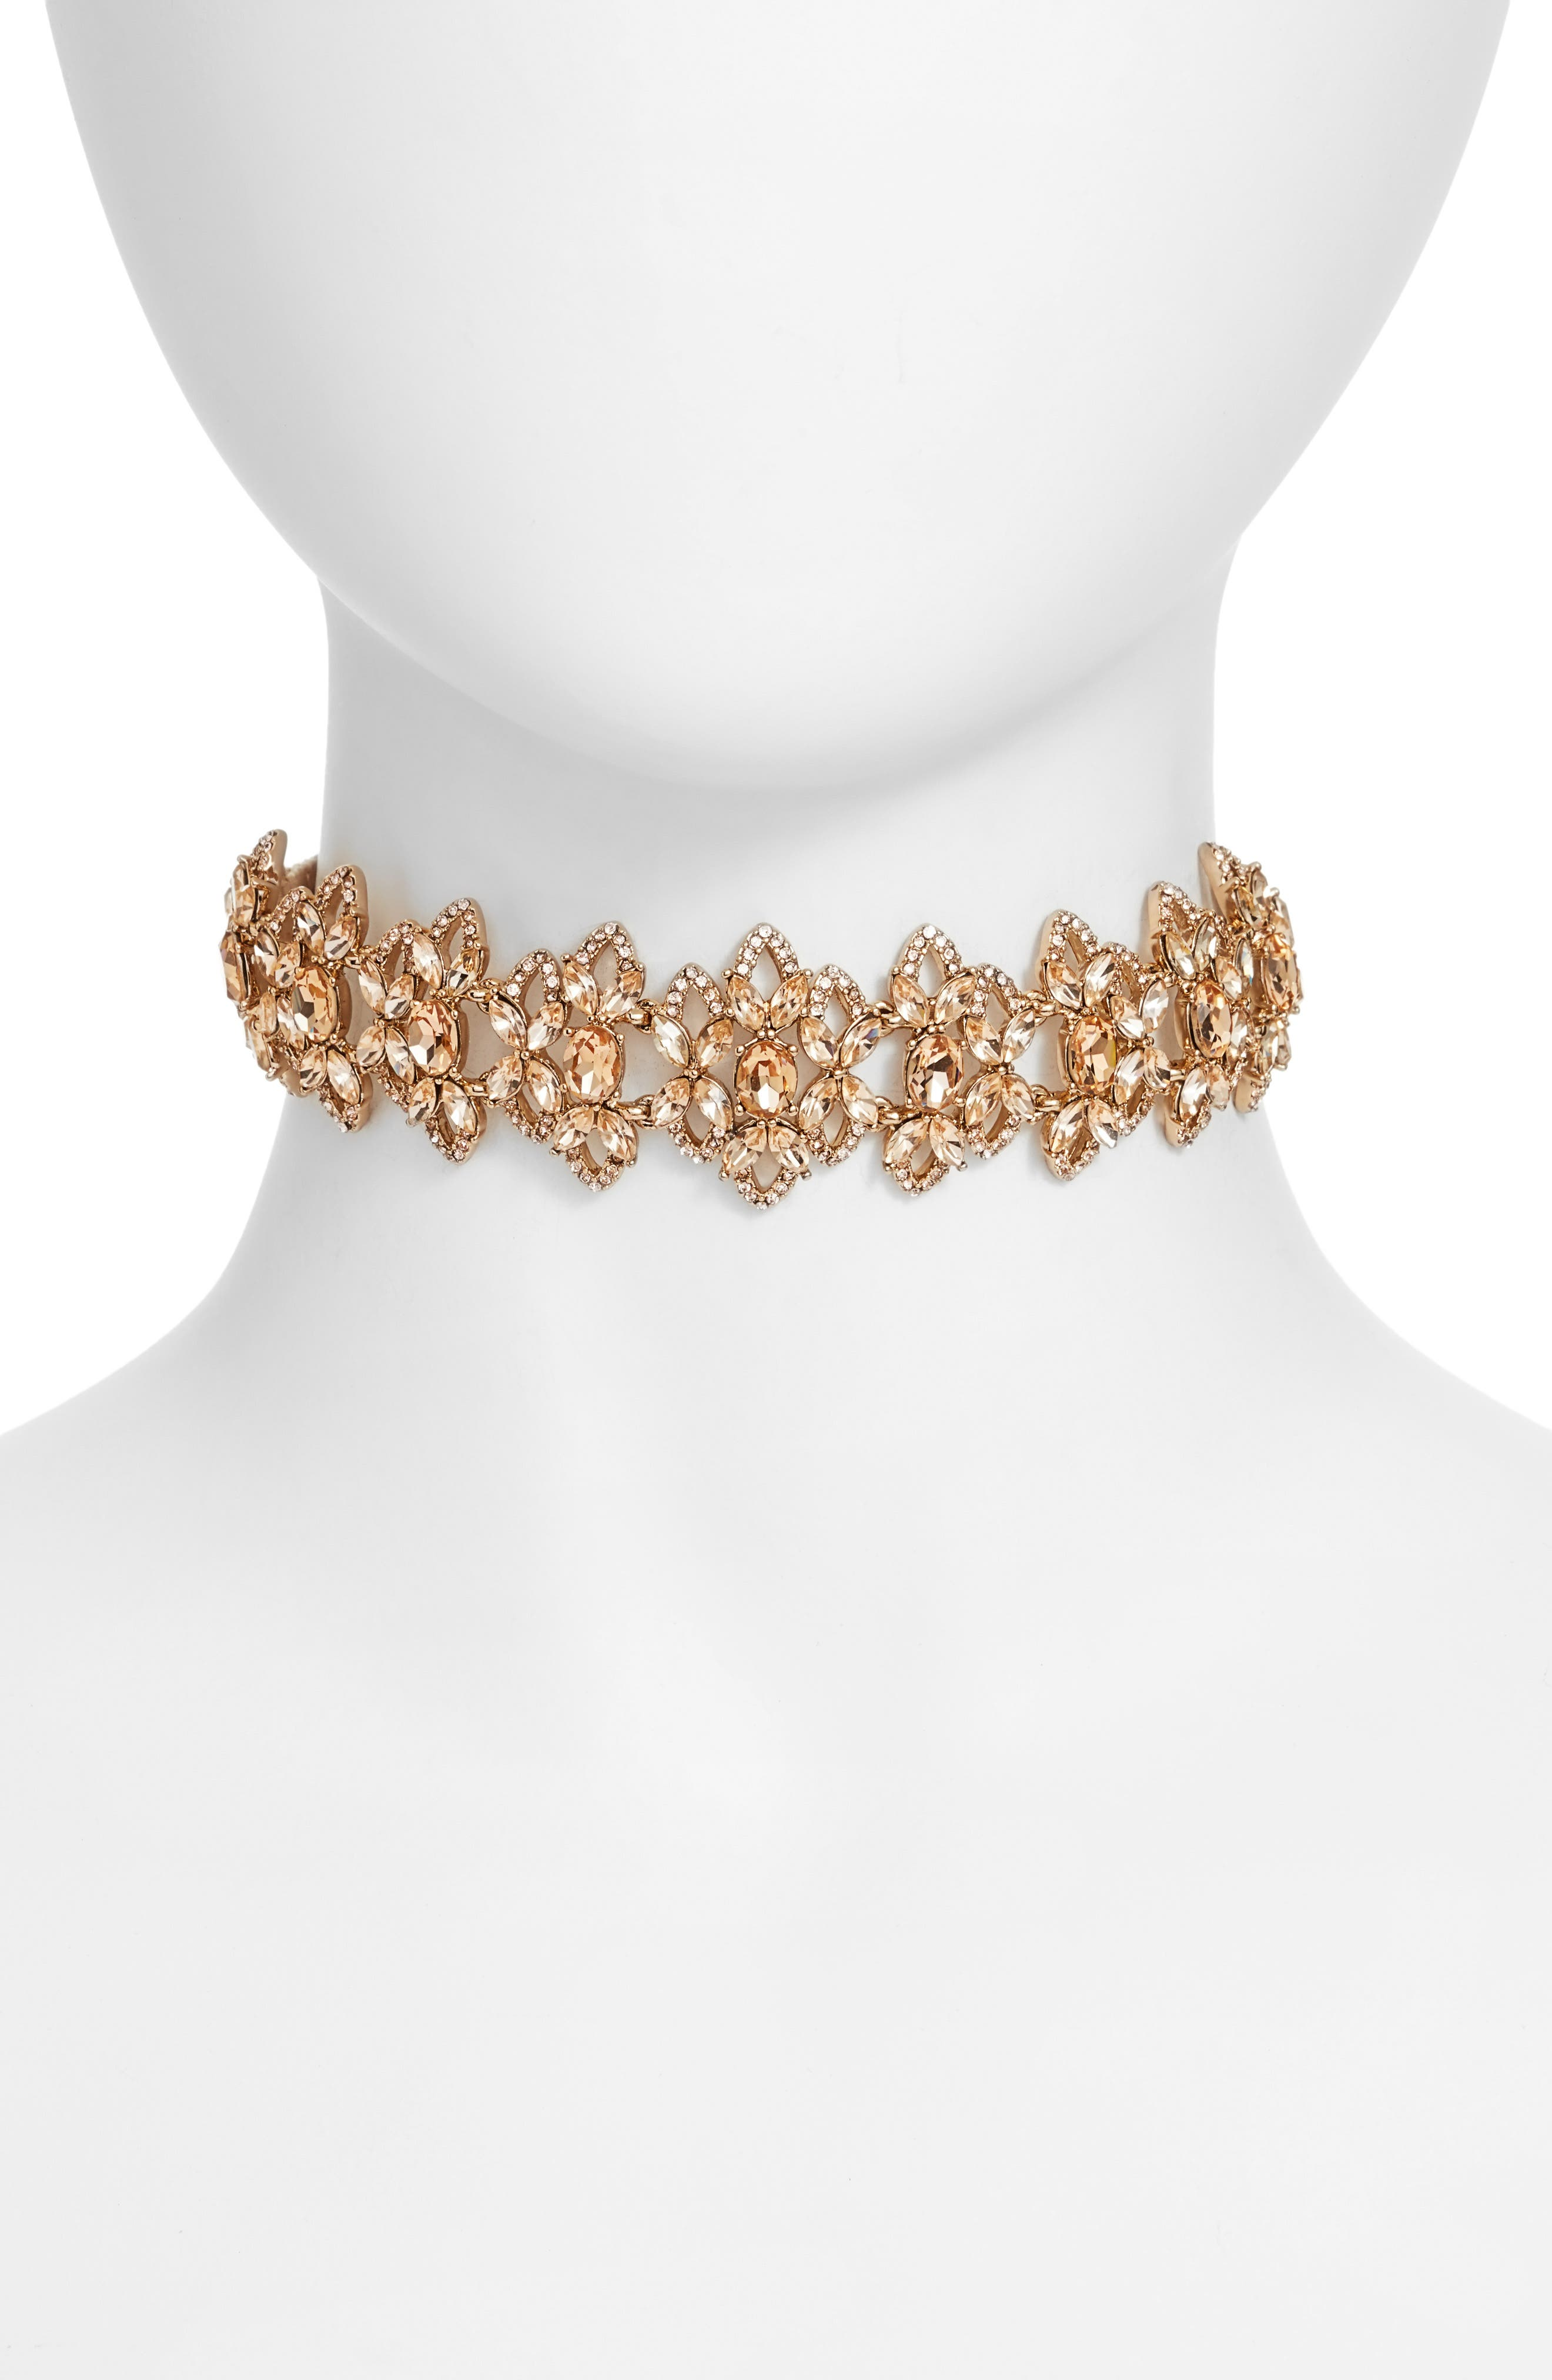 JENNY PACKHAM 4-Way Convertible Necklace